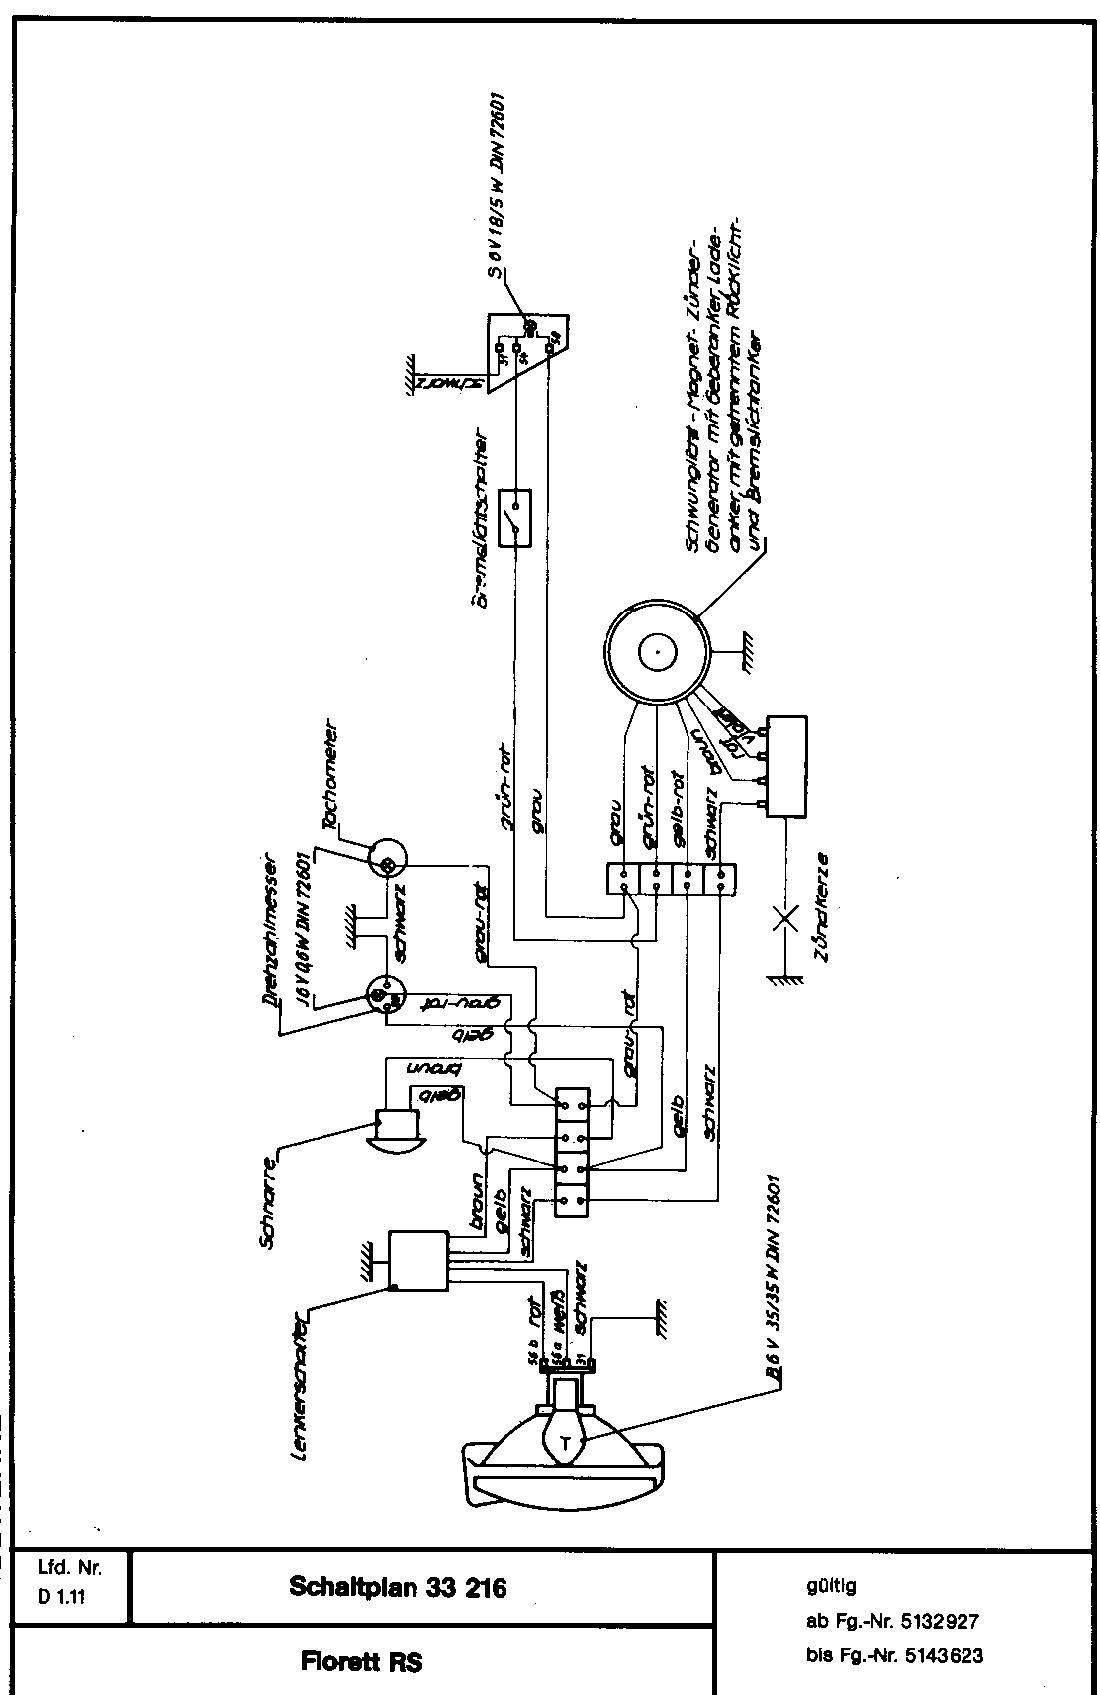 hight resolution of harley softail parts diagram sh3 me 1987 harley davidson fxstc softail wiring diagram 87 harley sportster 883 wiring diagram